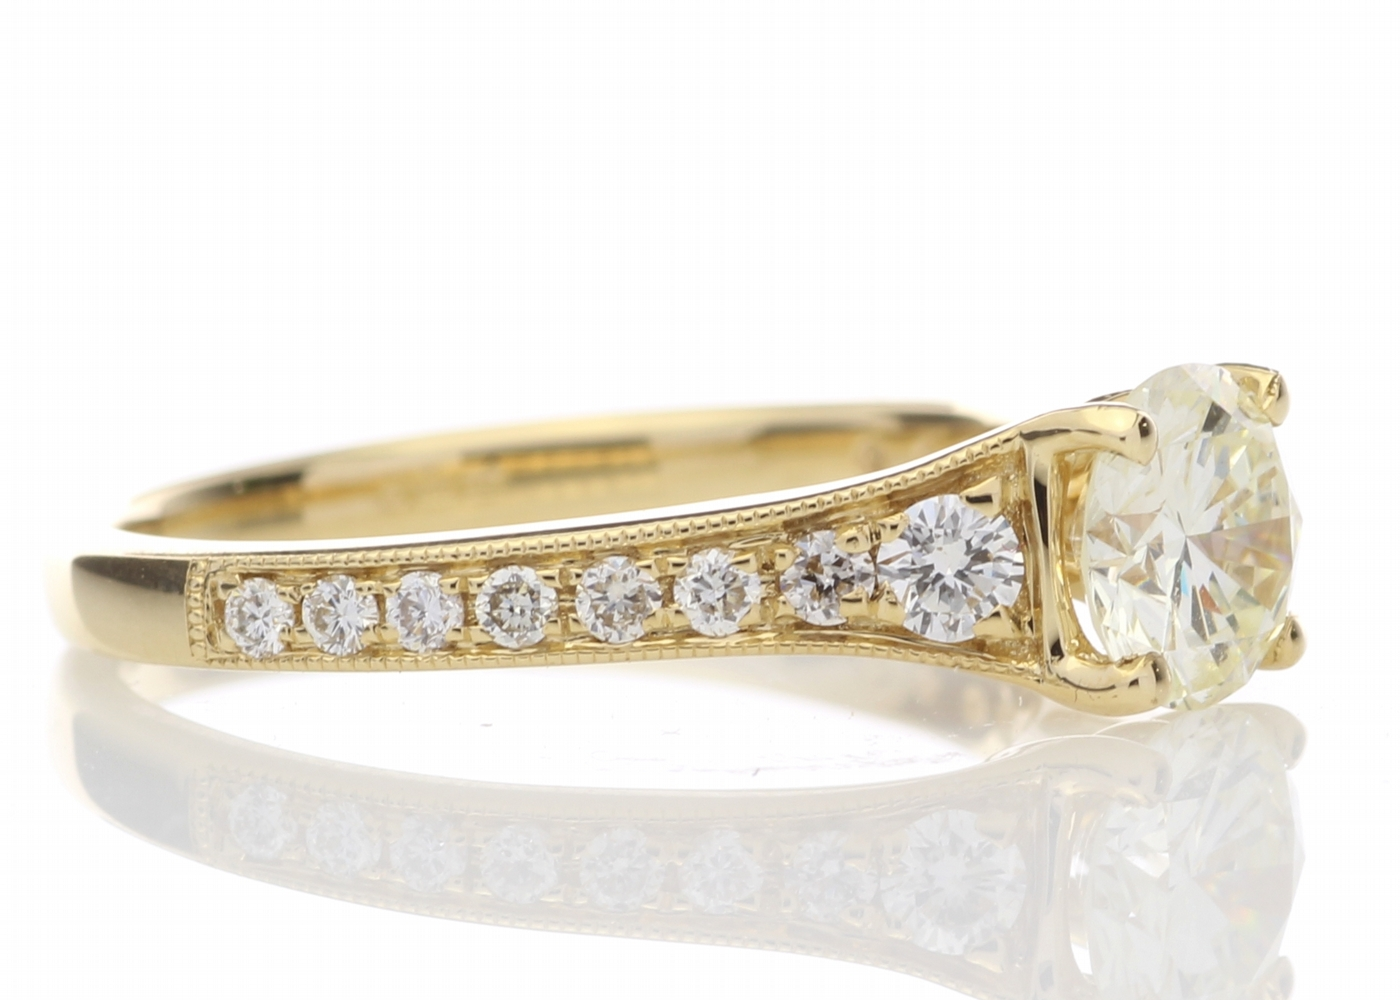 18ct Yellow Gold Diamond Ring With Stone Set Shoulders 1.06 Carats - Image 4 of 5